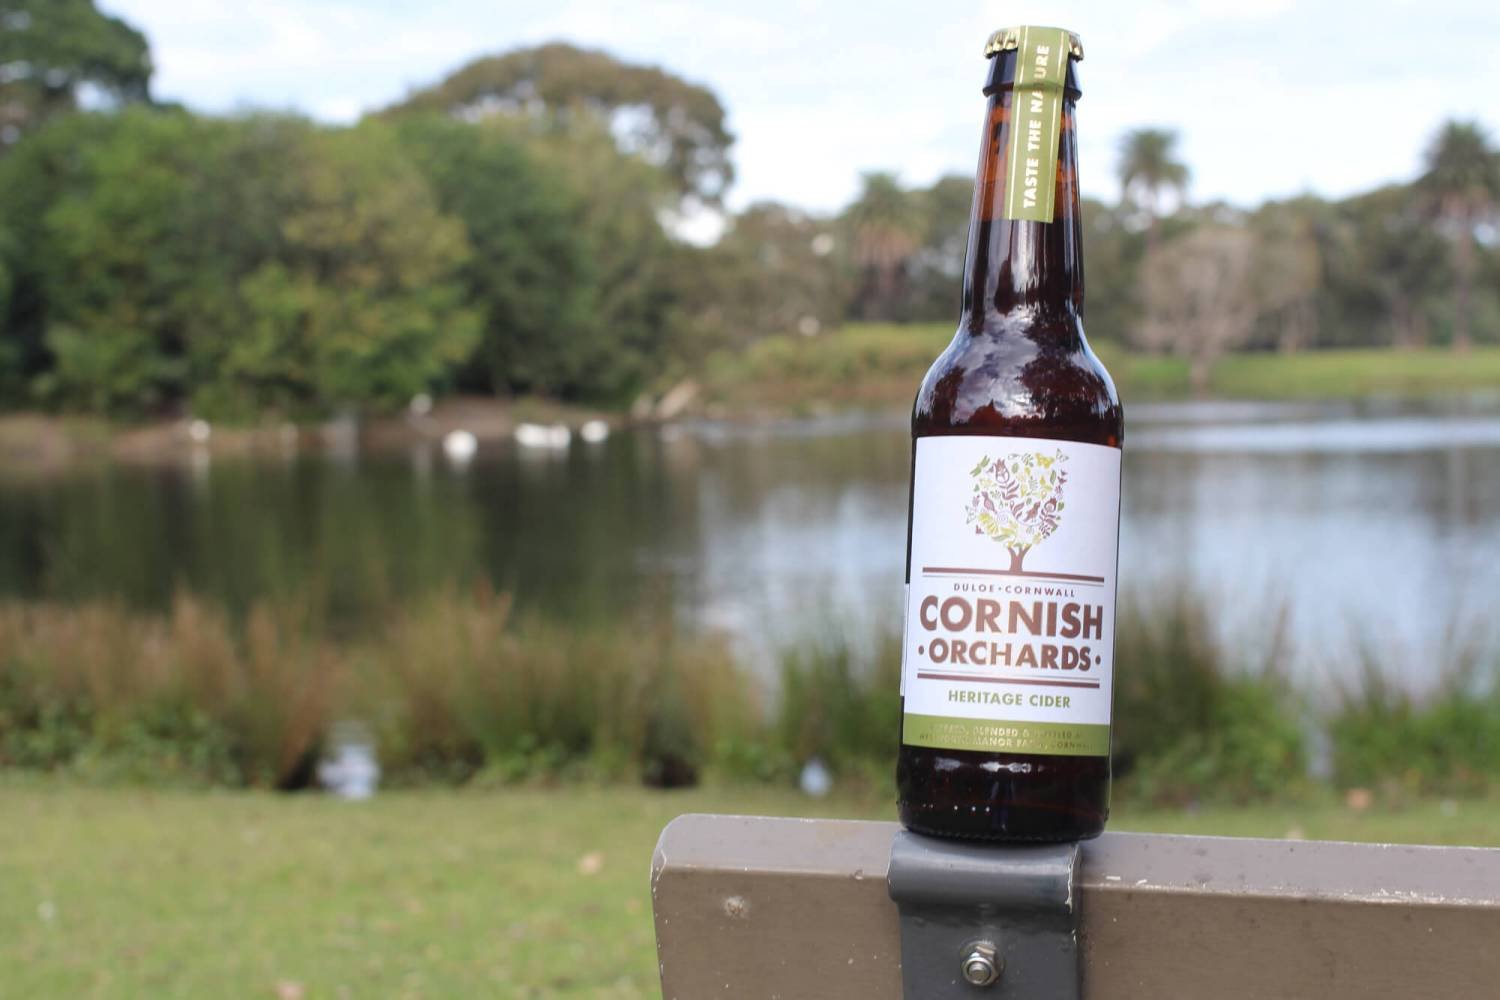 Cornish Orchard Heritage Cider